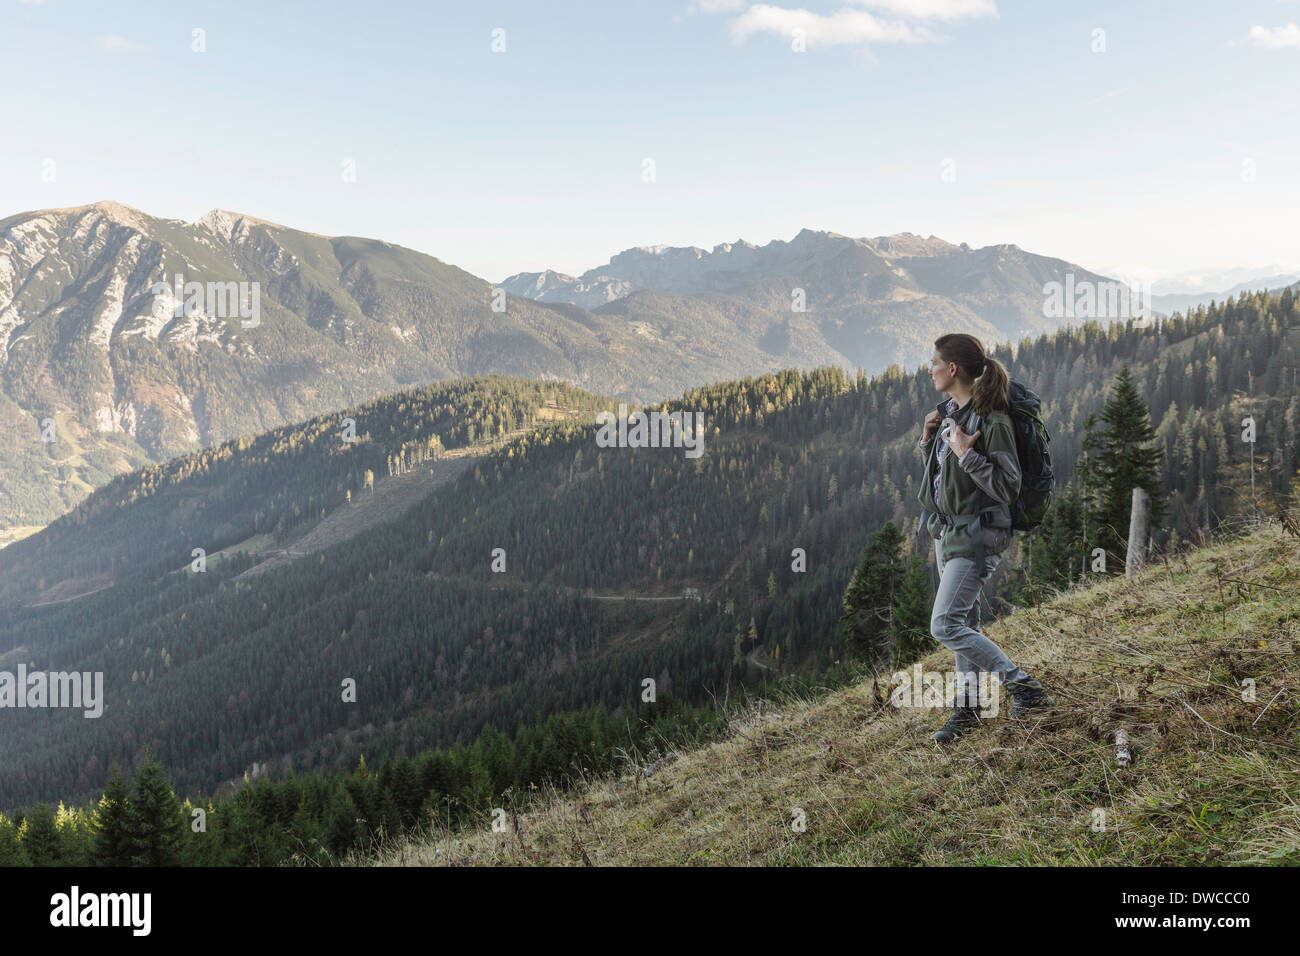 Mid adult woman backpacking in Achensee, Tyrol, Austria - Stock Image